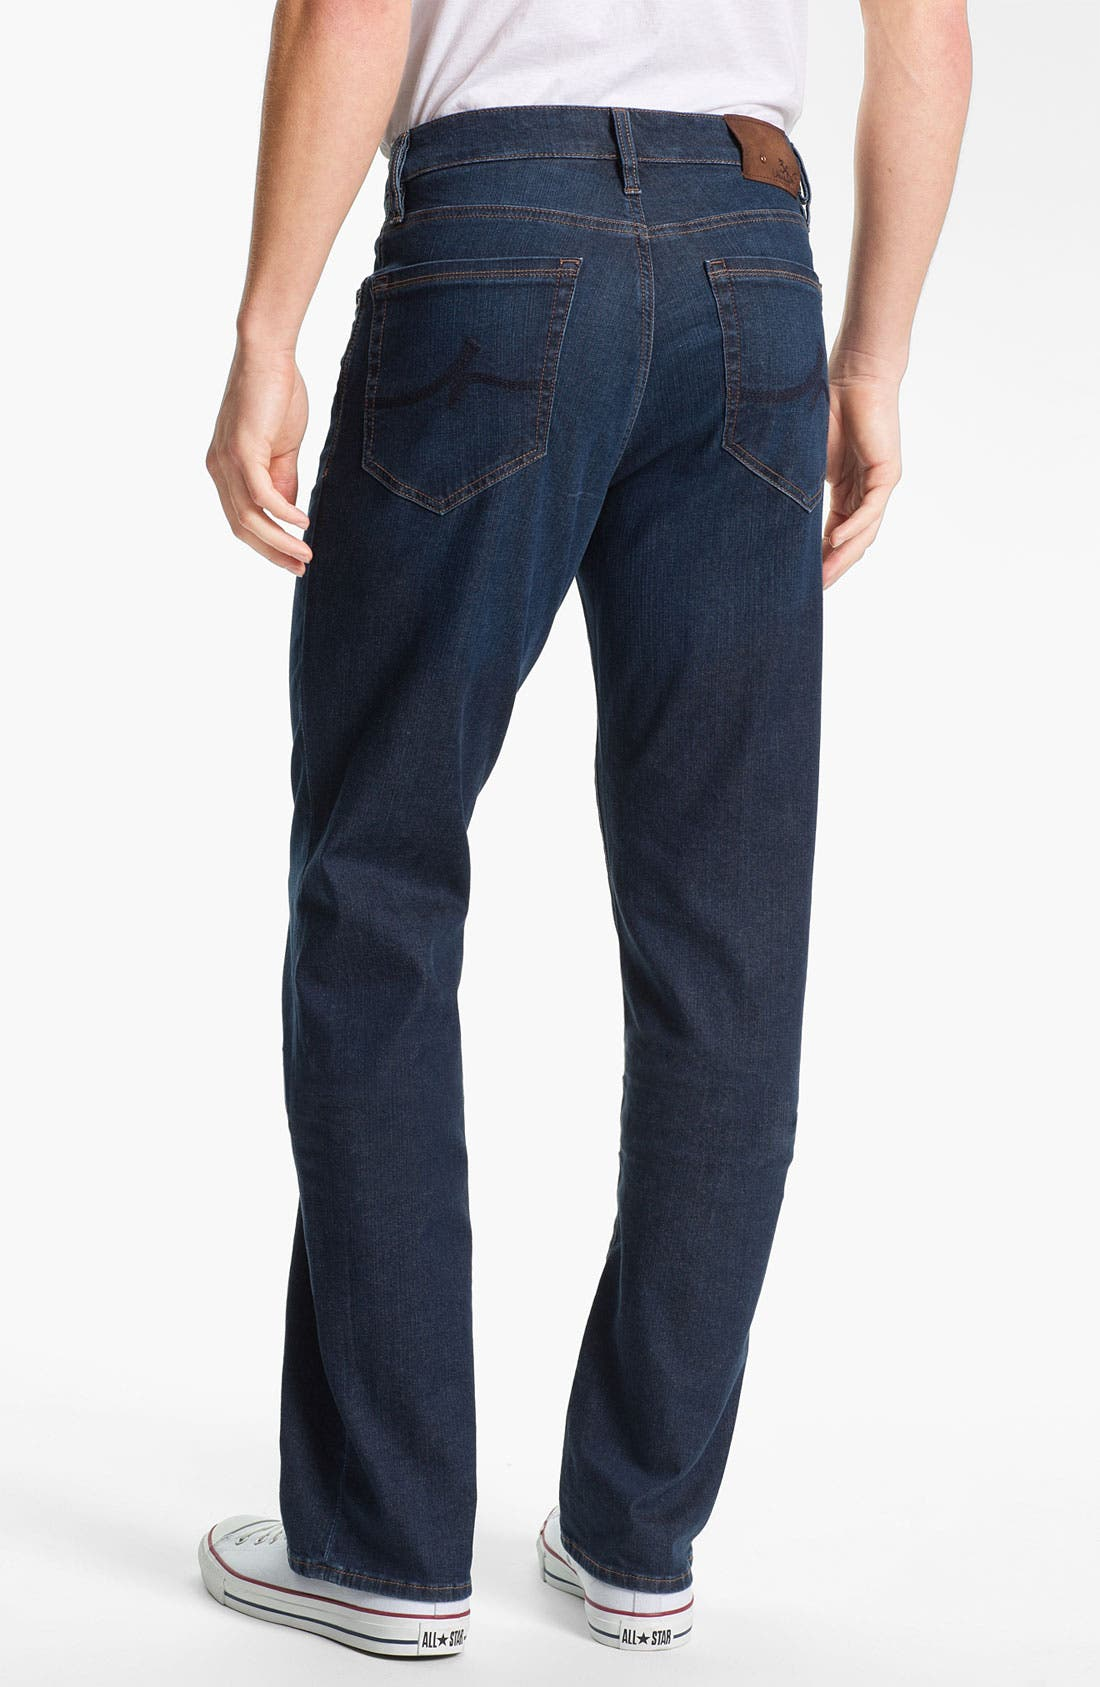 Alternate Image 2  - 34 Heritage 'Charisma' Classic Relaxed Fit Jeans (Dark Cashmere) (Online Only) (Regular & Tall)